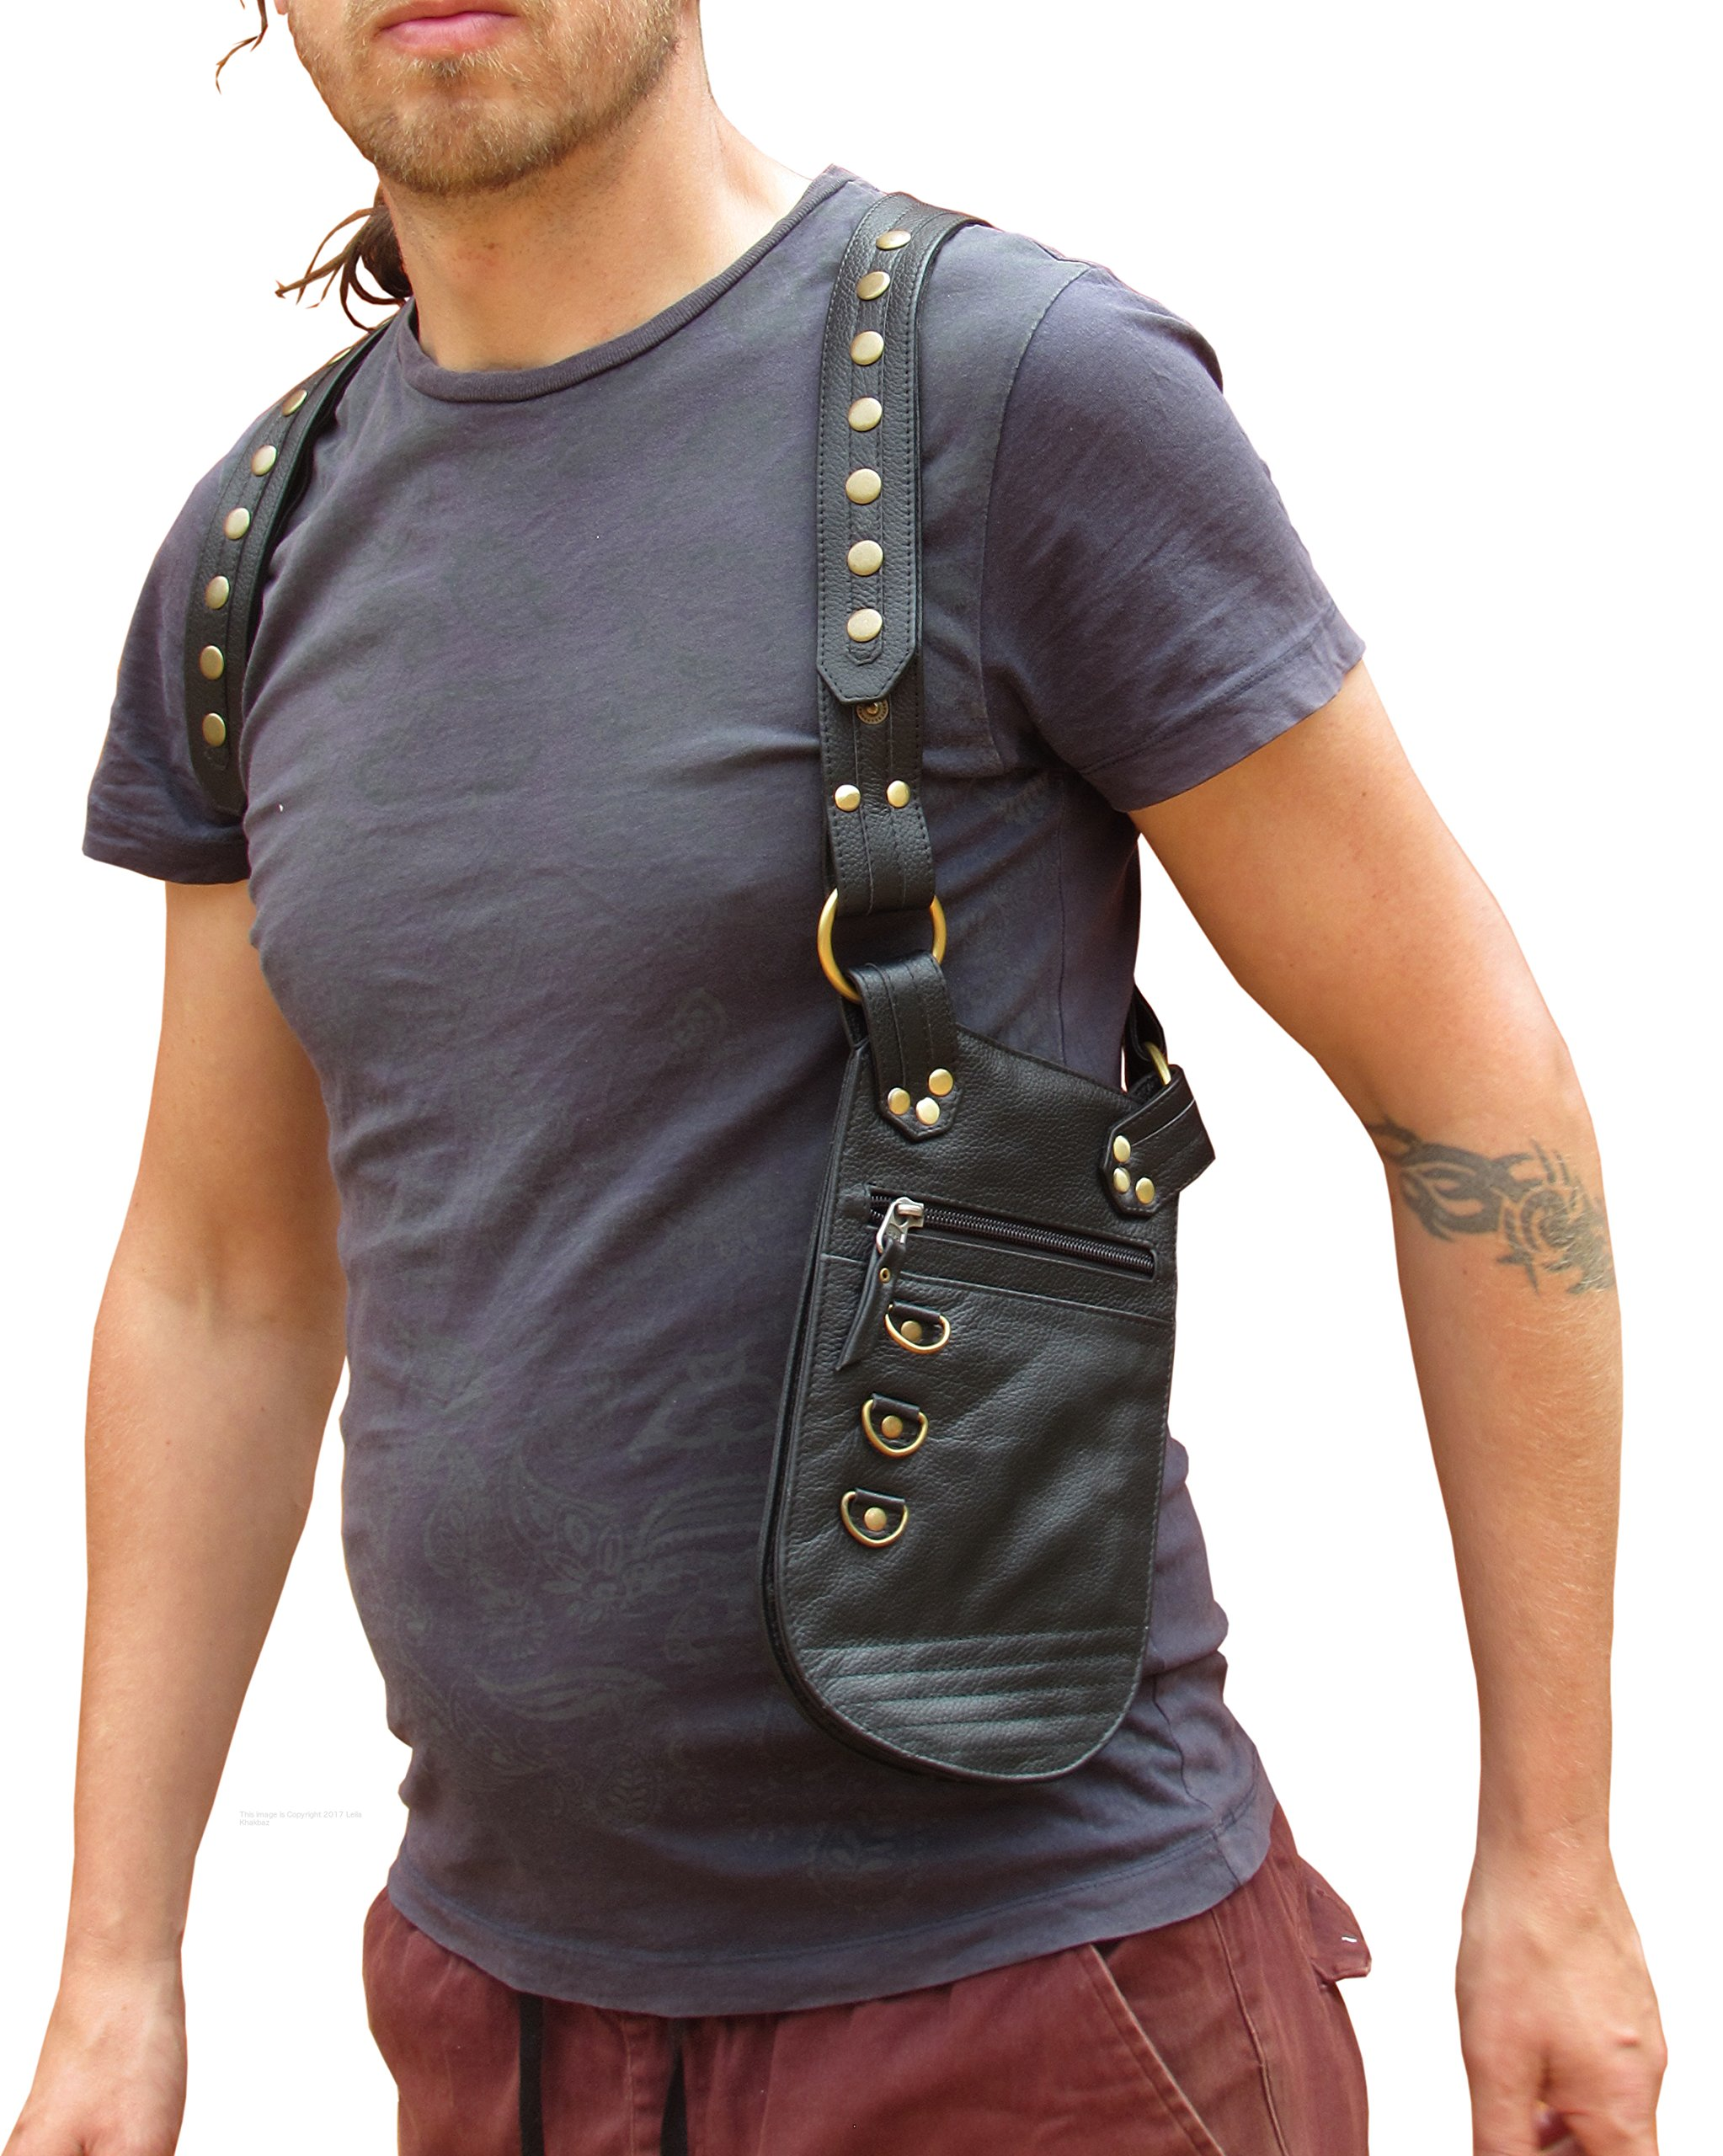 One Leaf Underarm Holster Leather Travel Pouch - 2017 Version (Black)